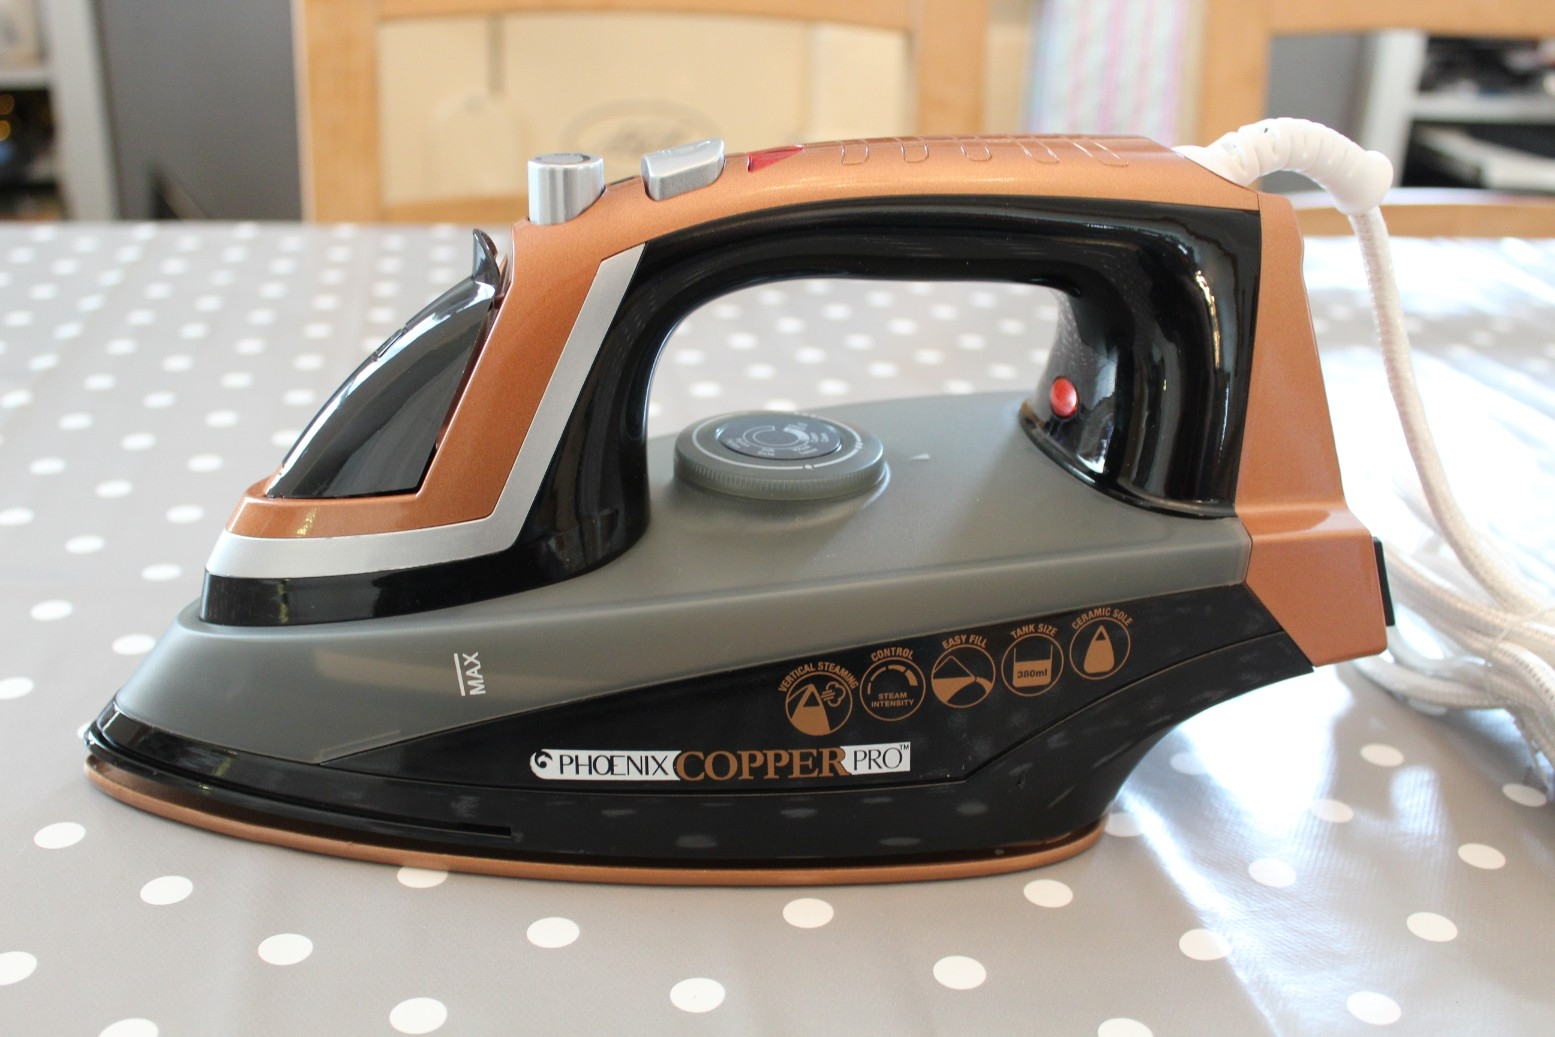 JML Phoenix Copper Iron Review (5)